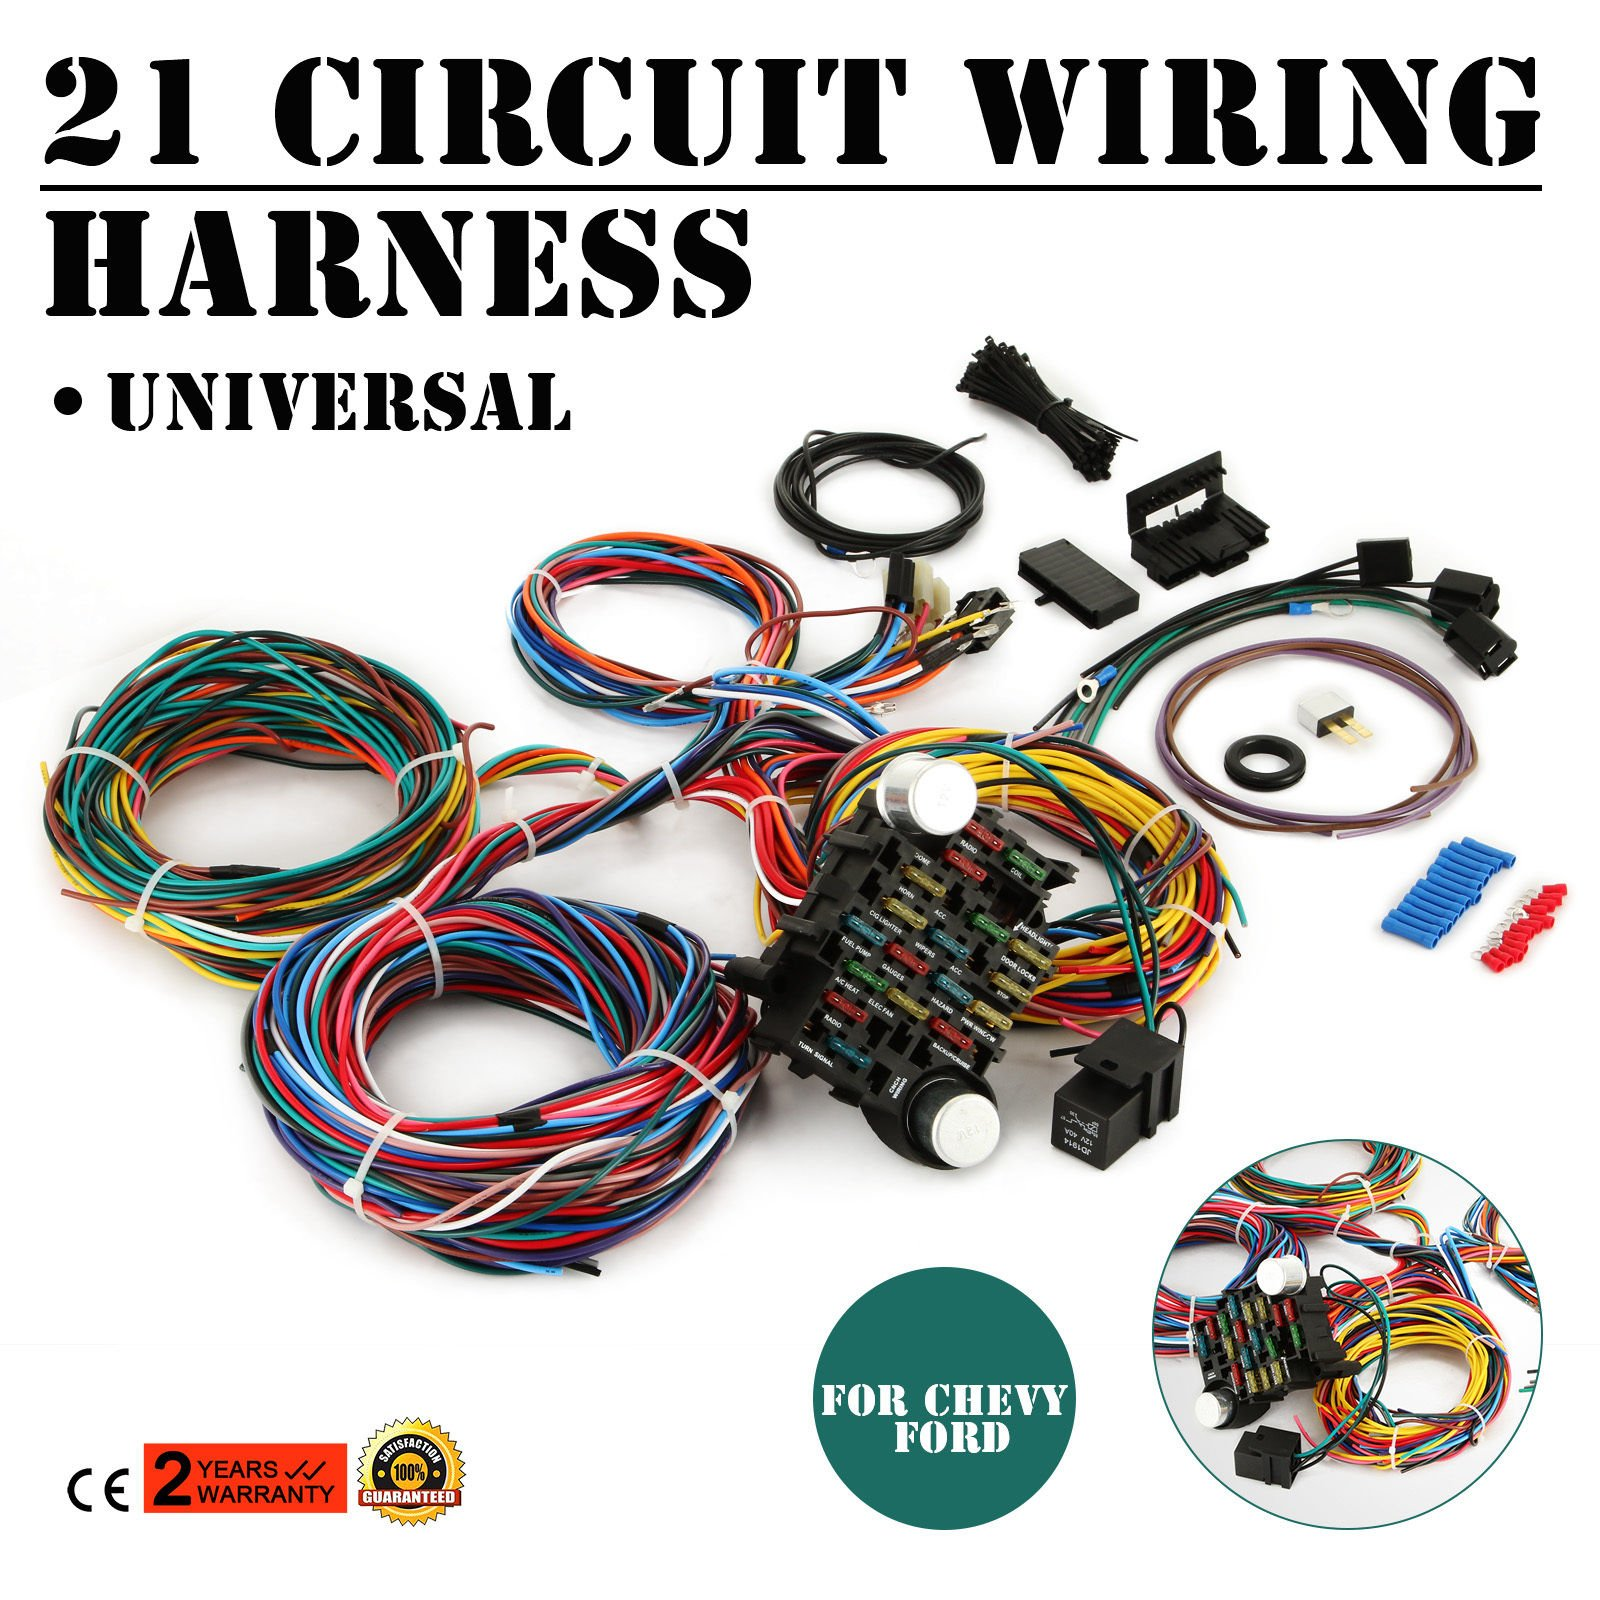 Universal Auto Wiring Harness Kits | WIRING DIAGRAM TUTORIAL on